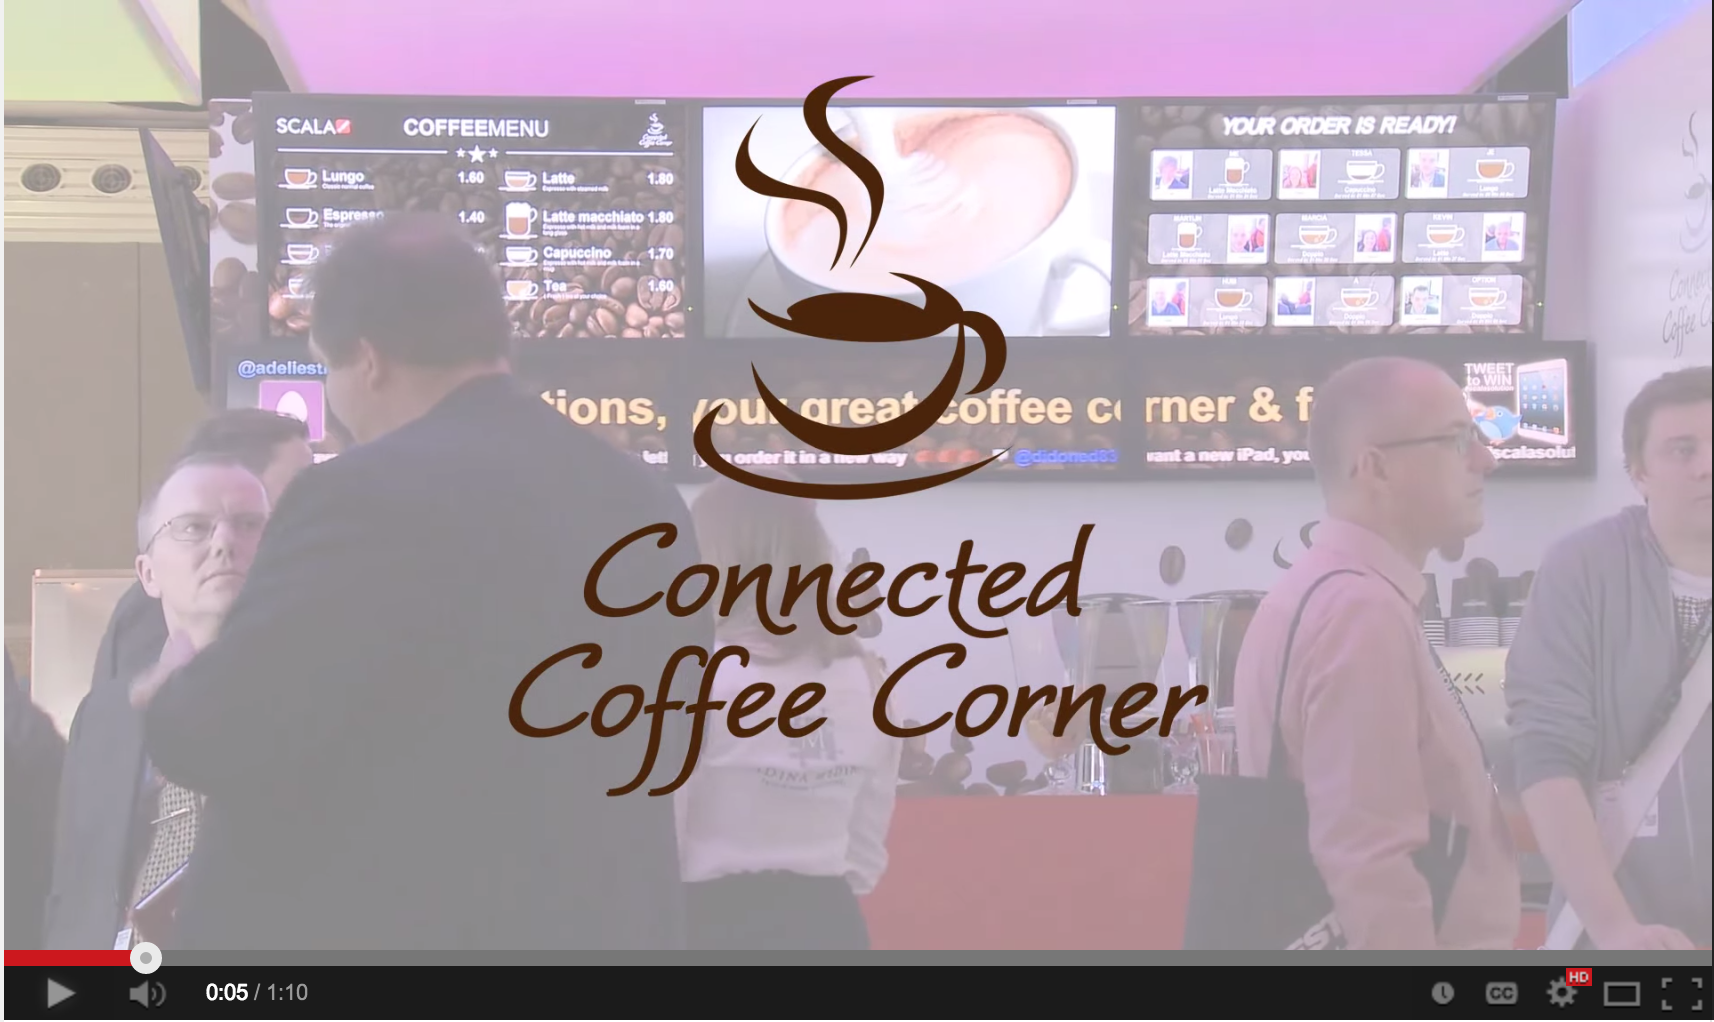 Connected Coffee Corner